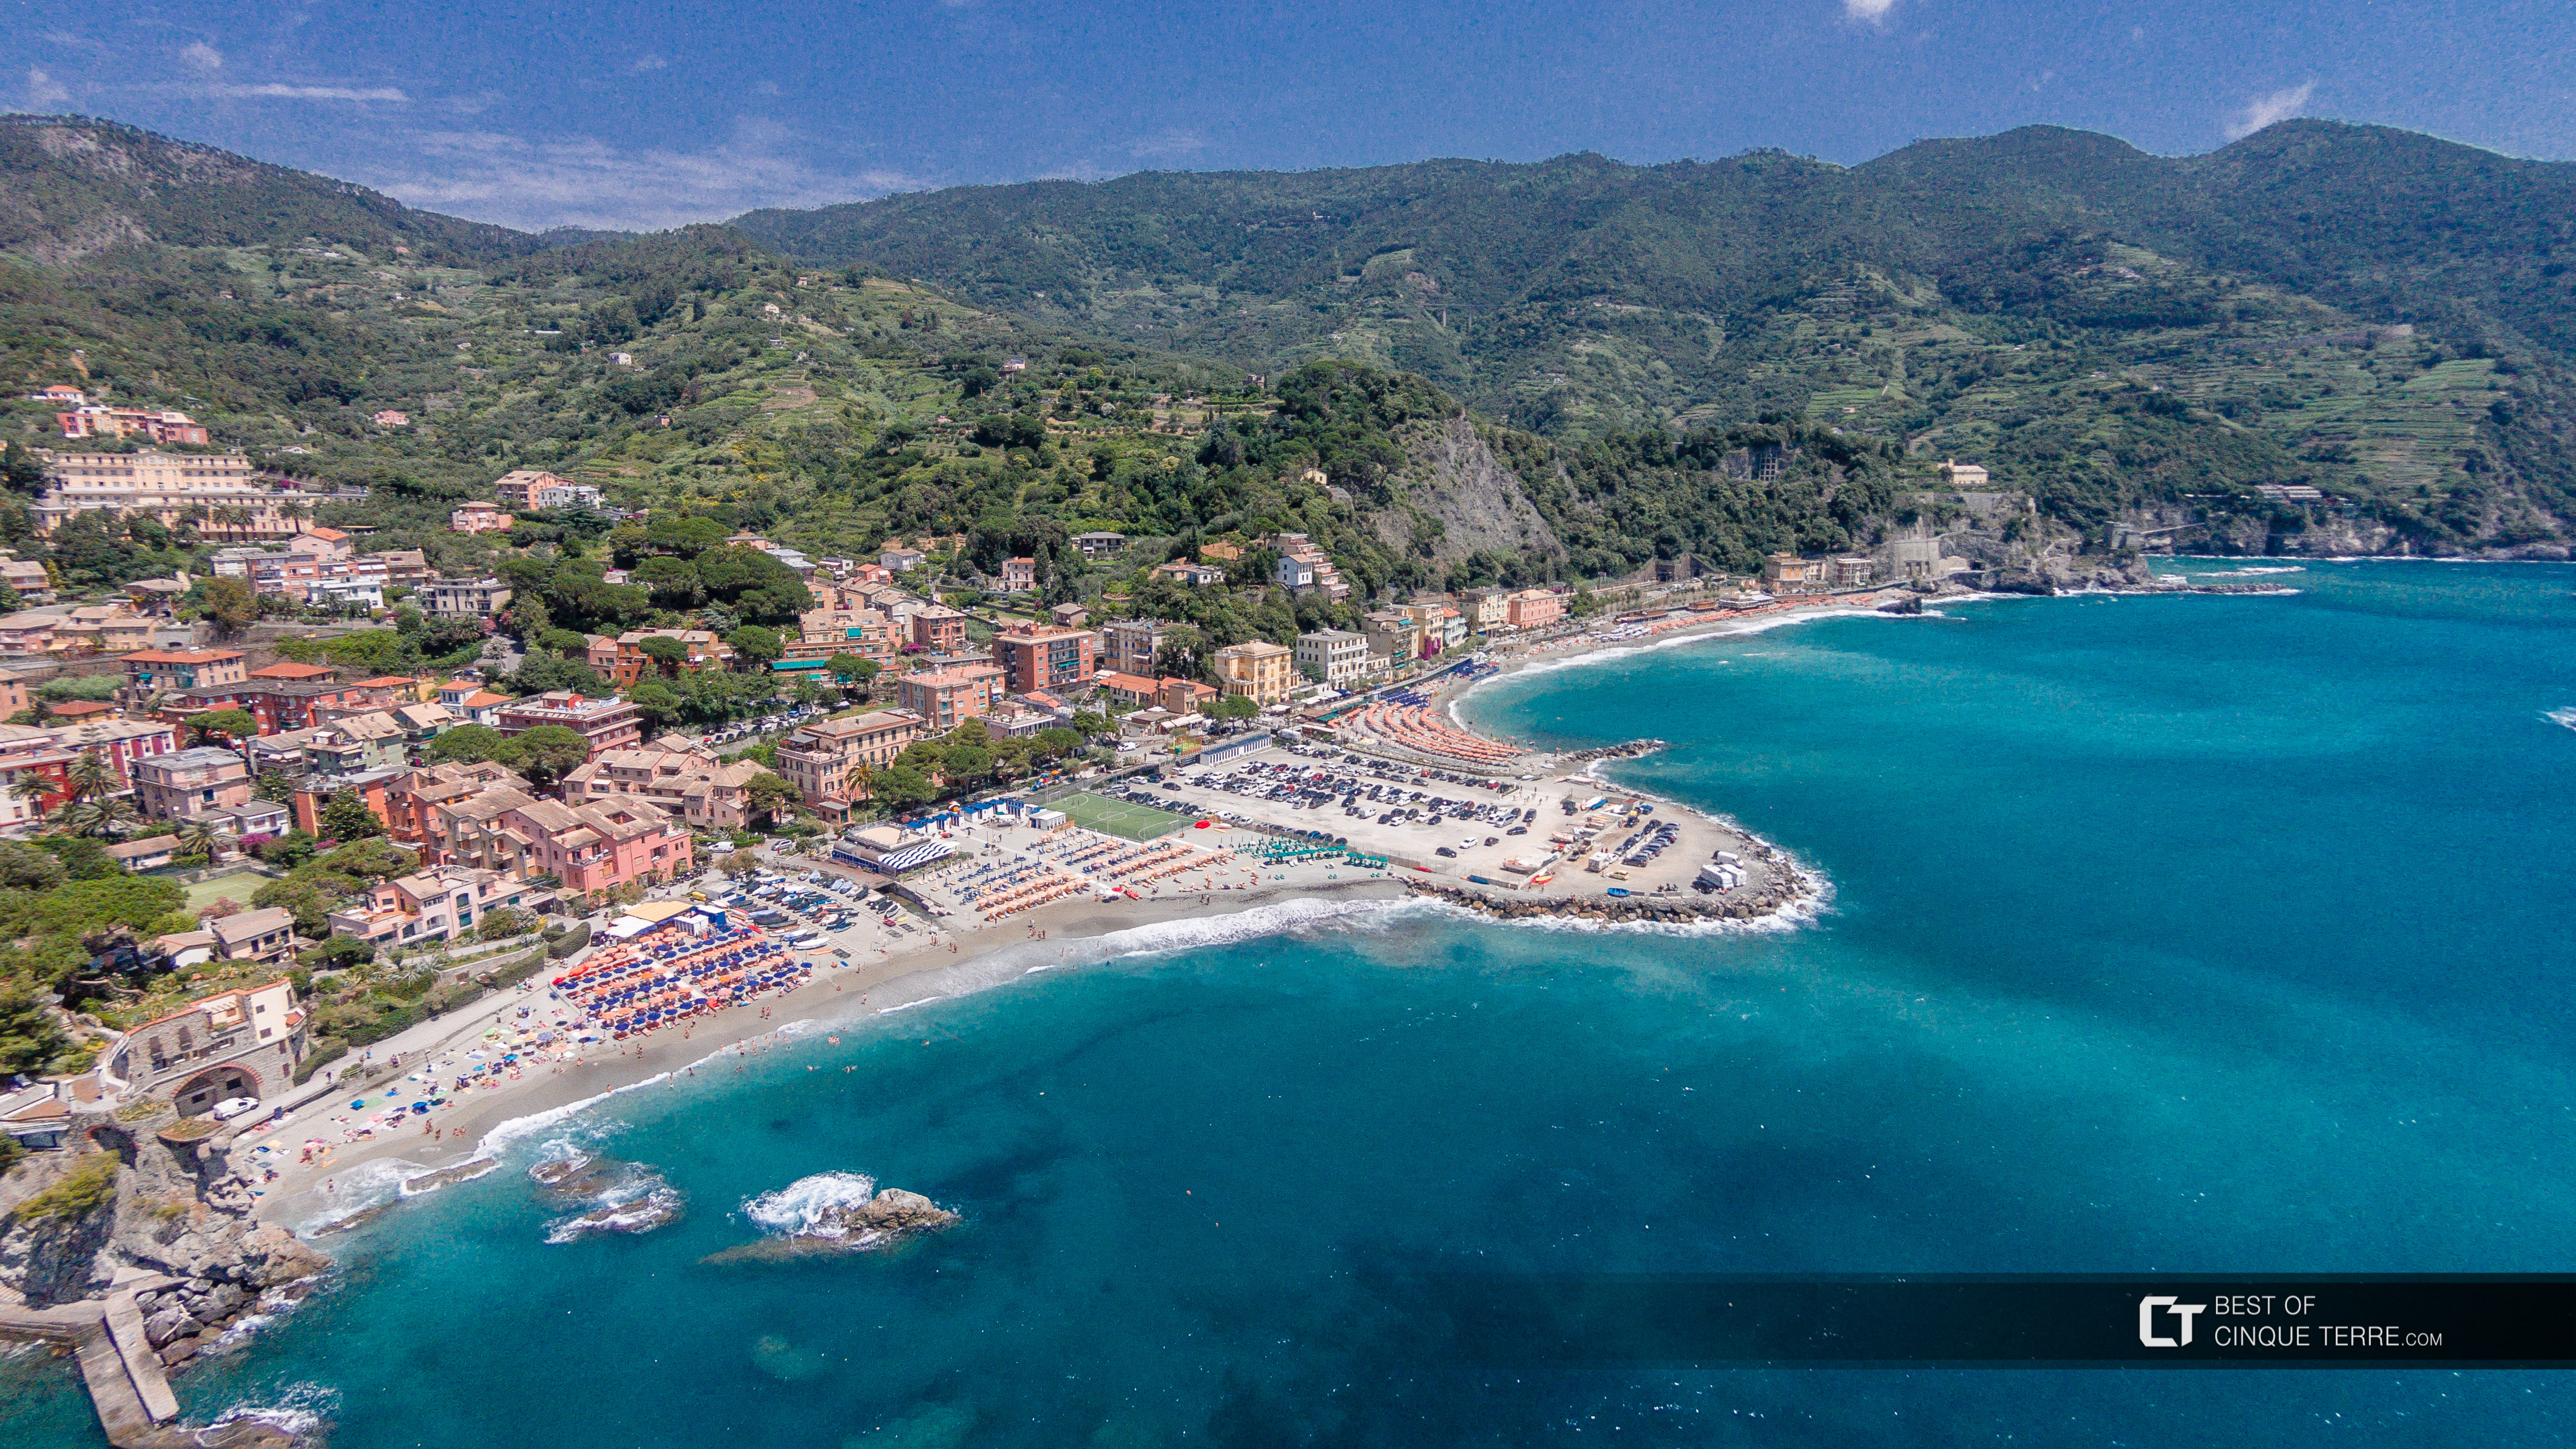 Aerial view of the village, Monterosso al Mare, Cinque Terre, Italy